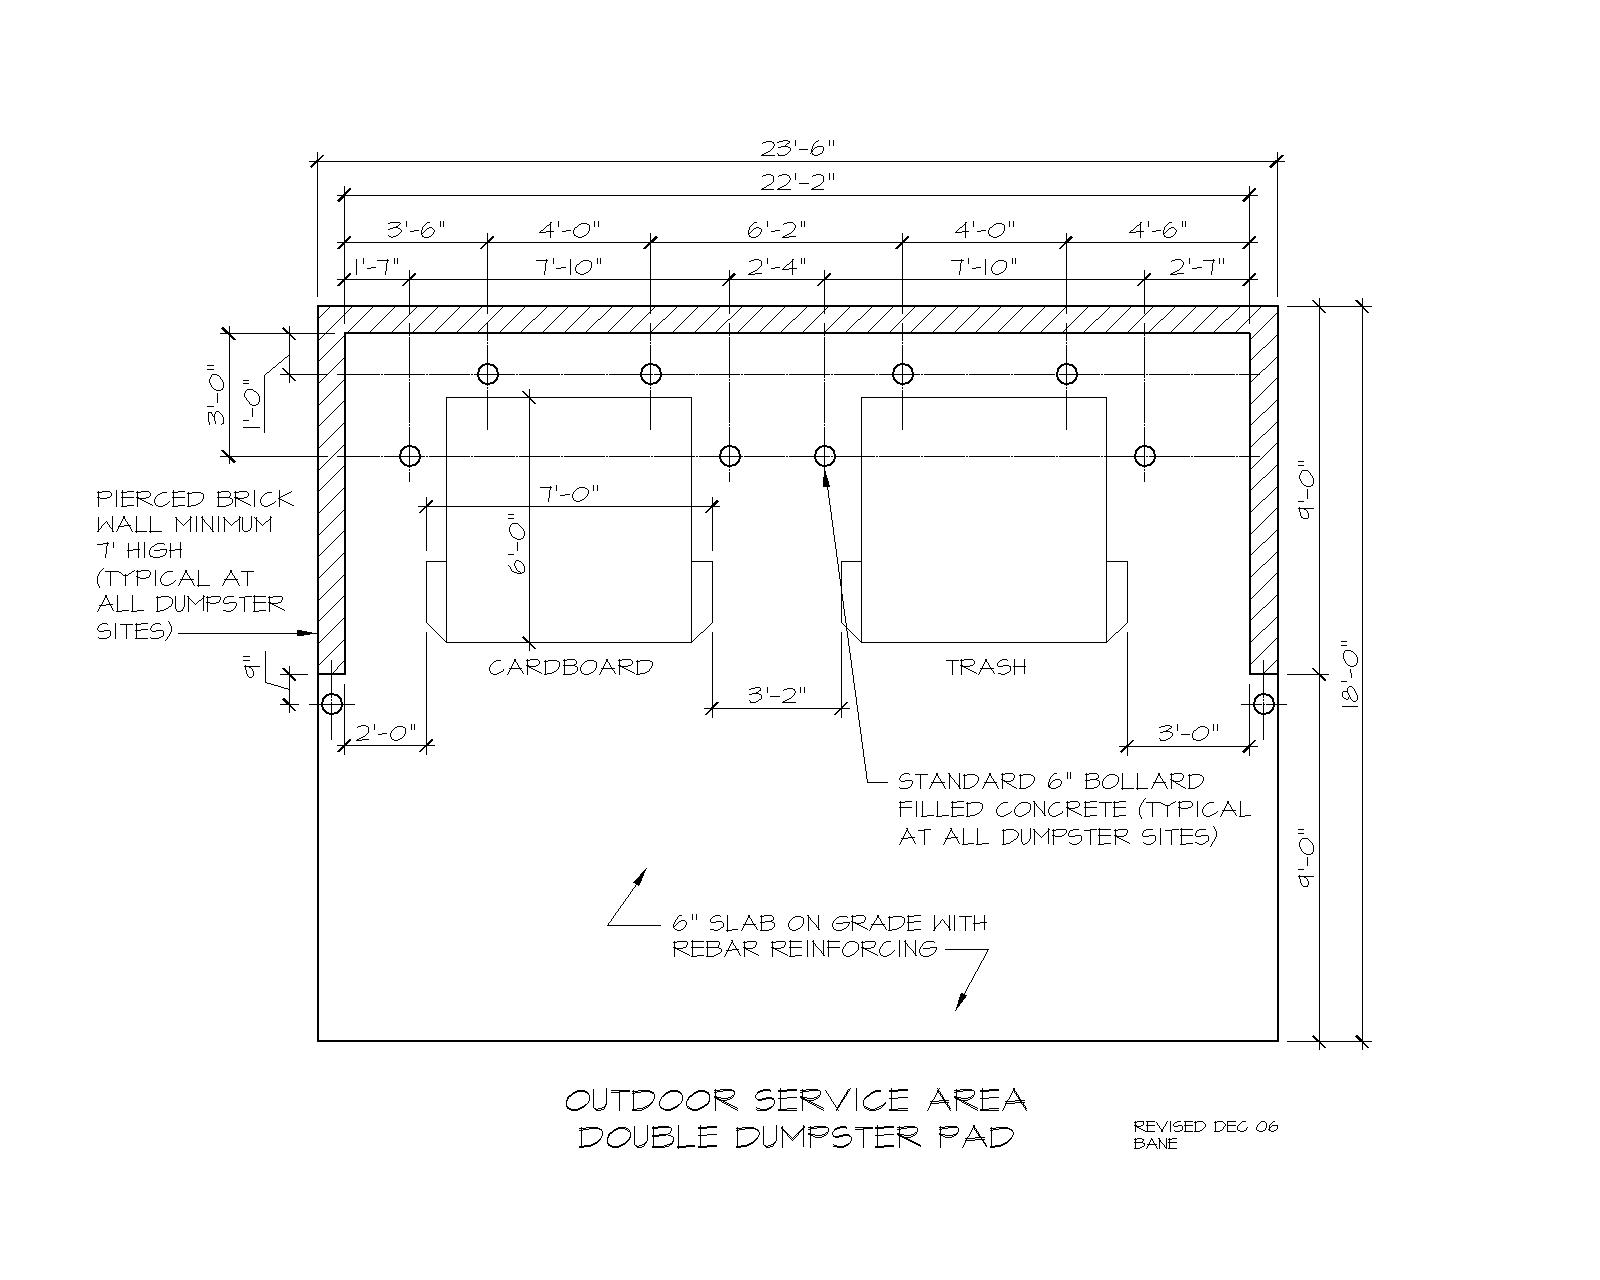 Outdoor Service Areas Facilities Services Wiring Codes Pad Dimensions